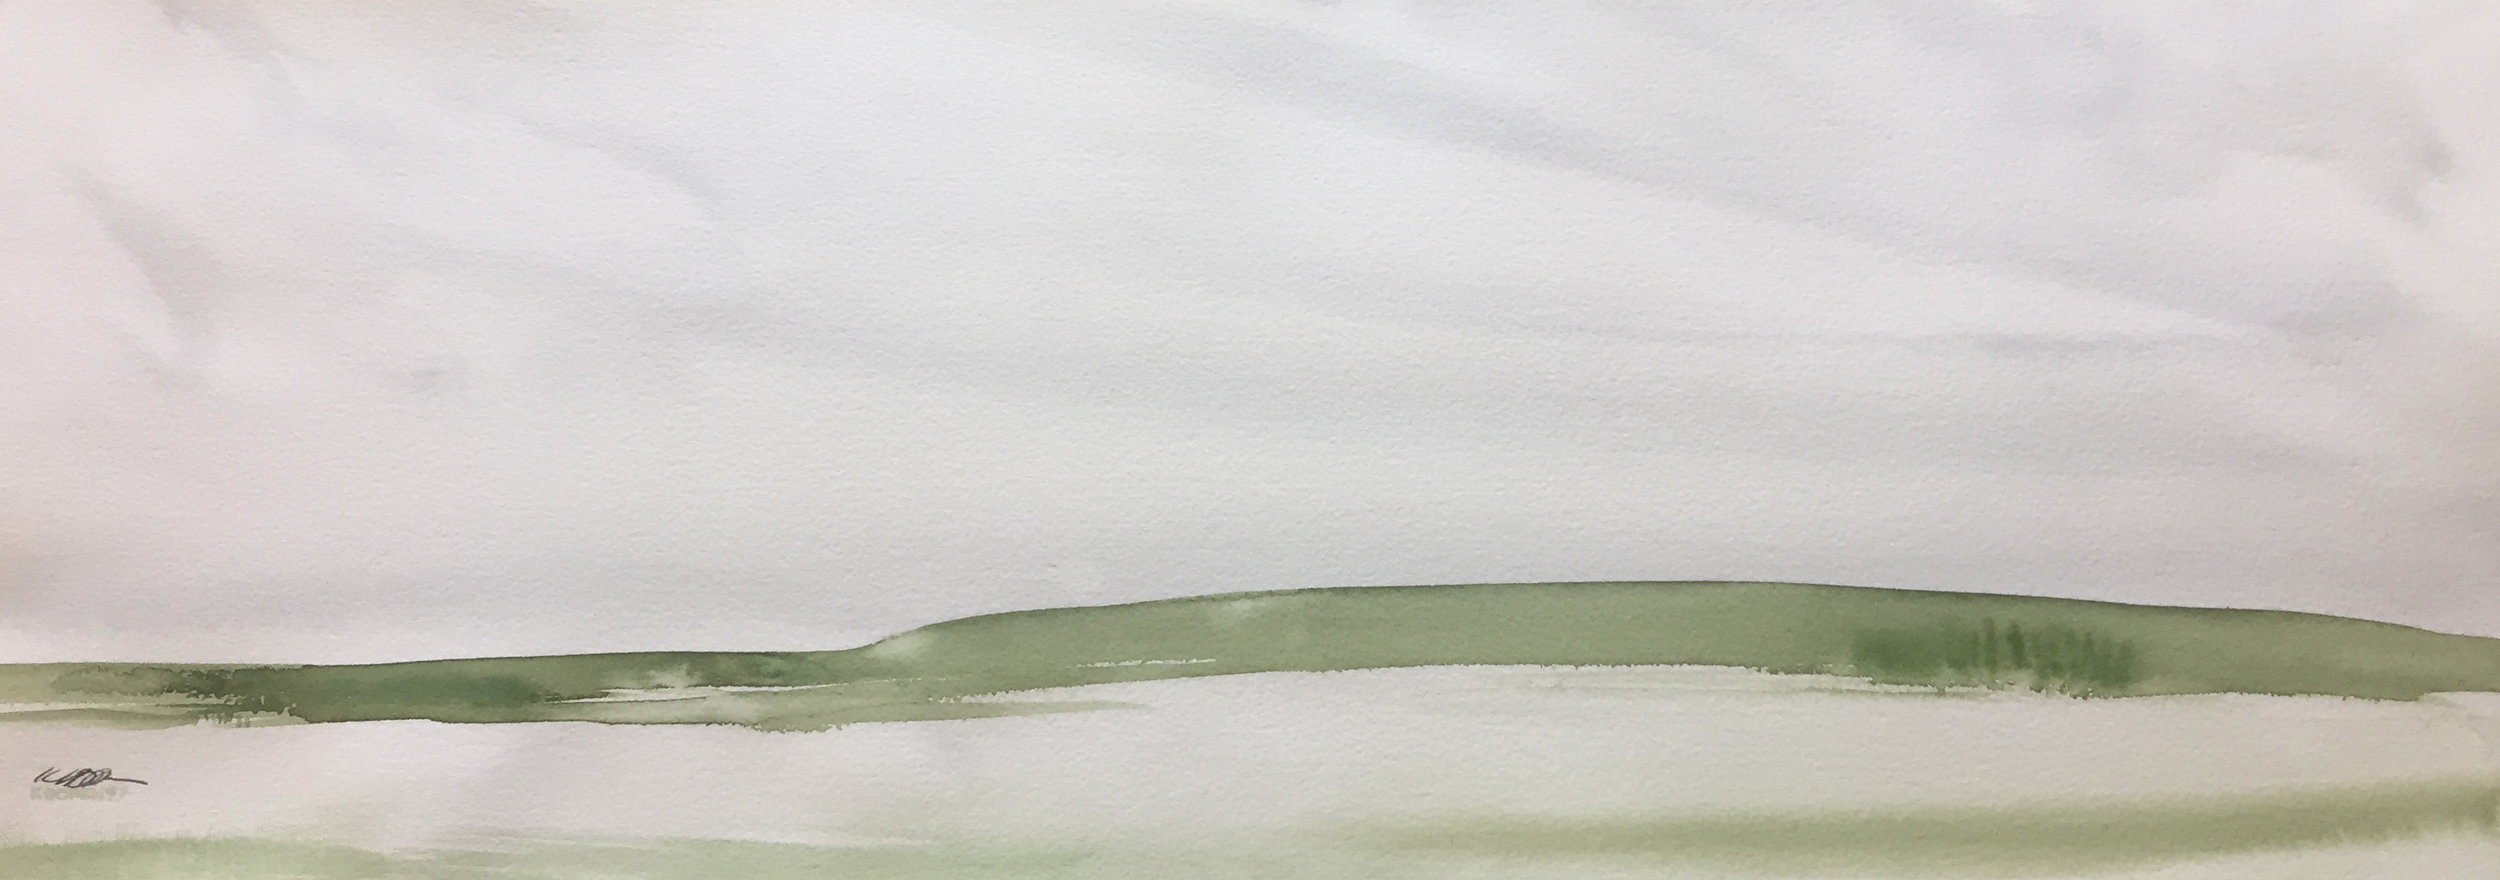 "distant thicket   30"" x 11""   original $1250   archival print $295"